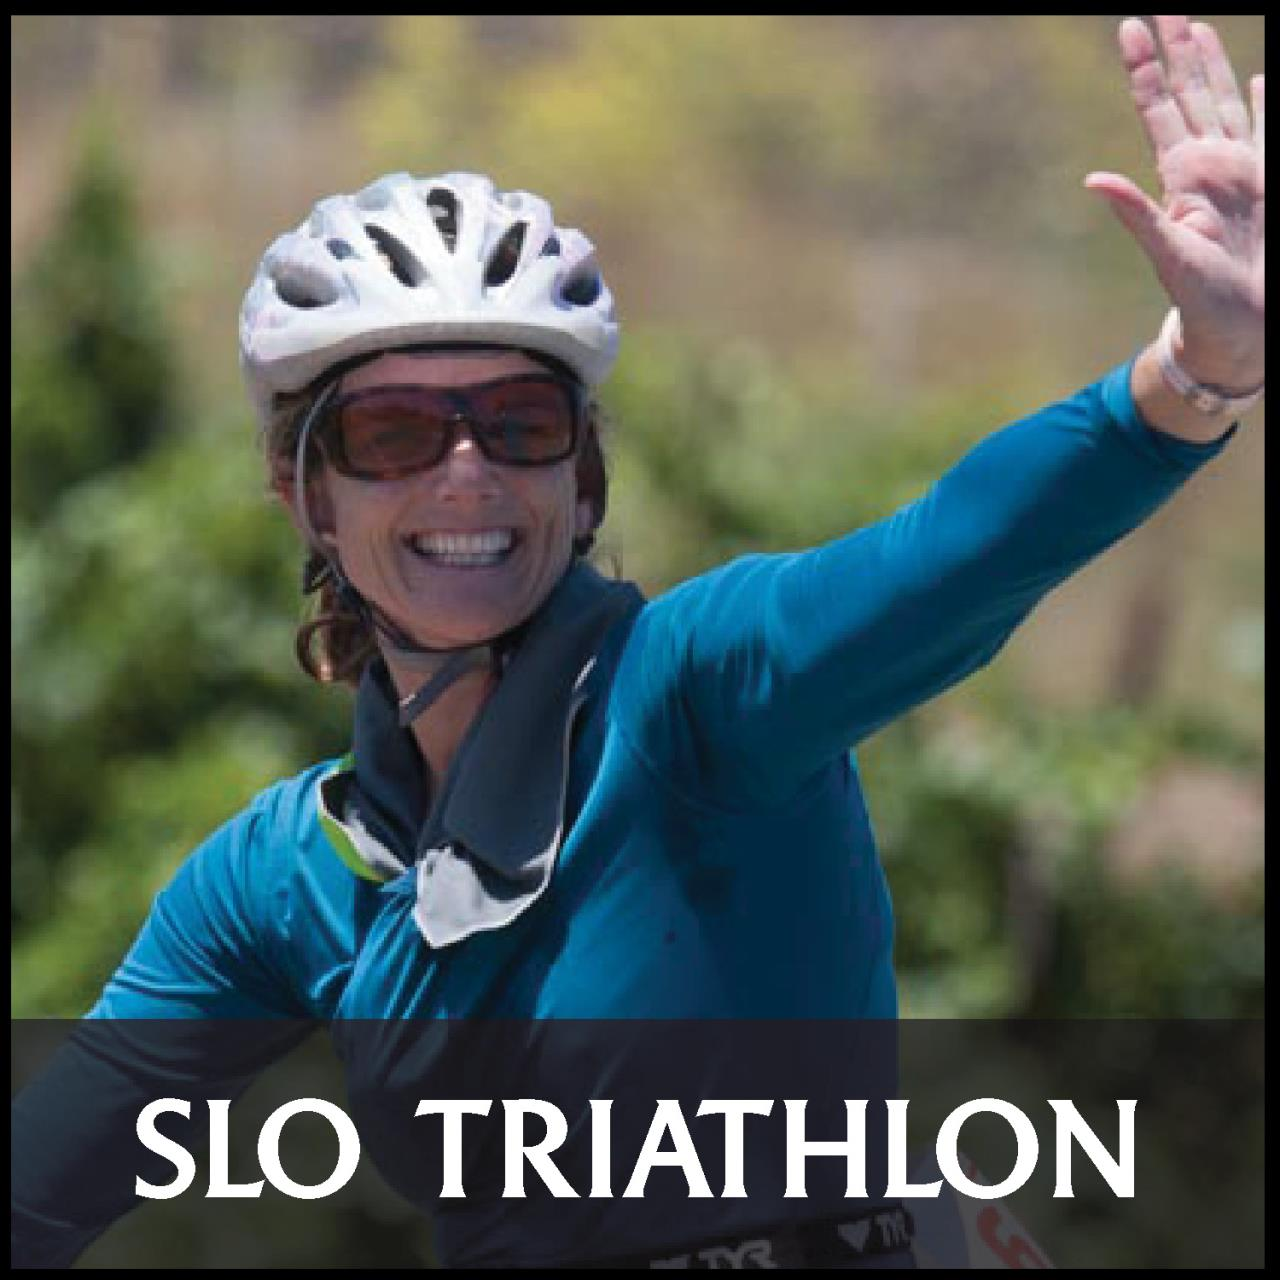 slo triathlon